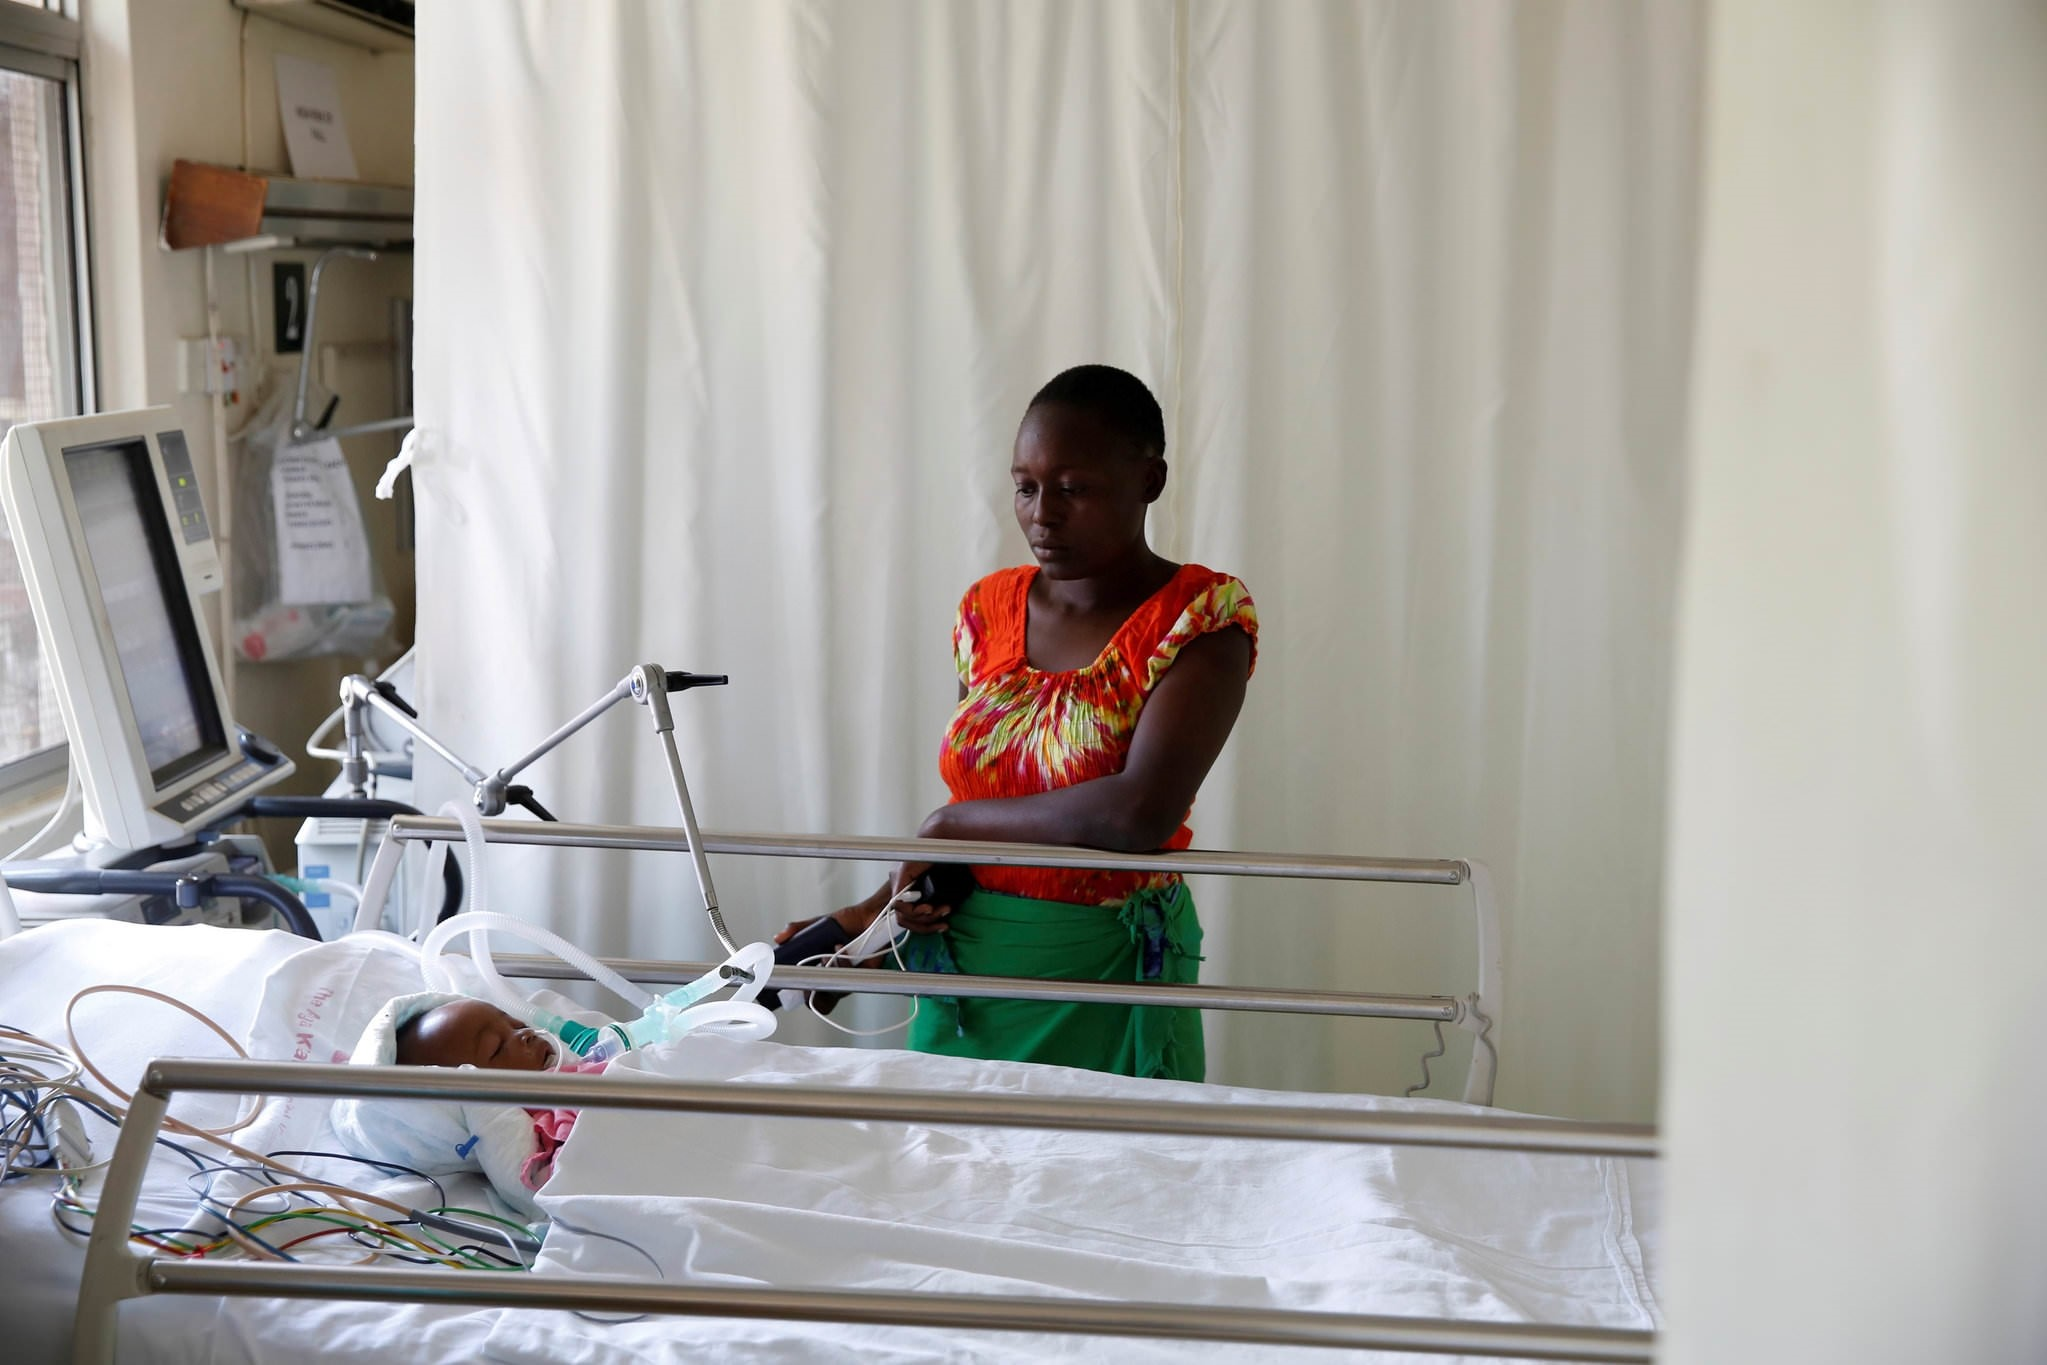 Lenzer, mother of Samantha Pendo, stands next to her bed as the girl remains in critical condition in the Intensive Care Unit of Aga Khan Hospital in Kenya August 14, 2017. (REUTERS Photo)